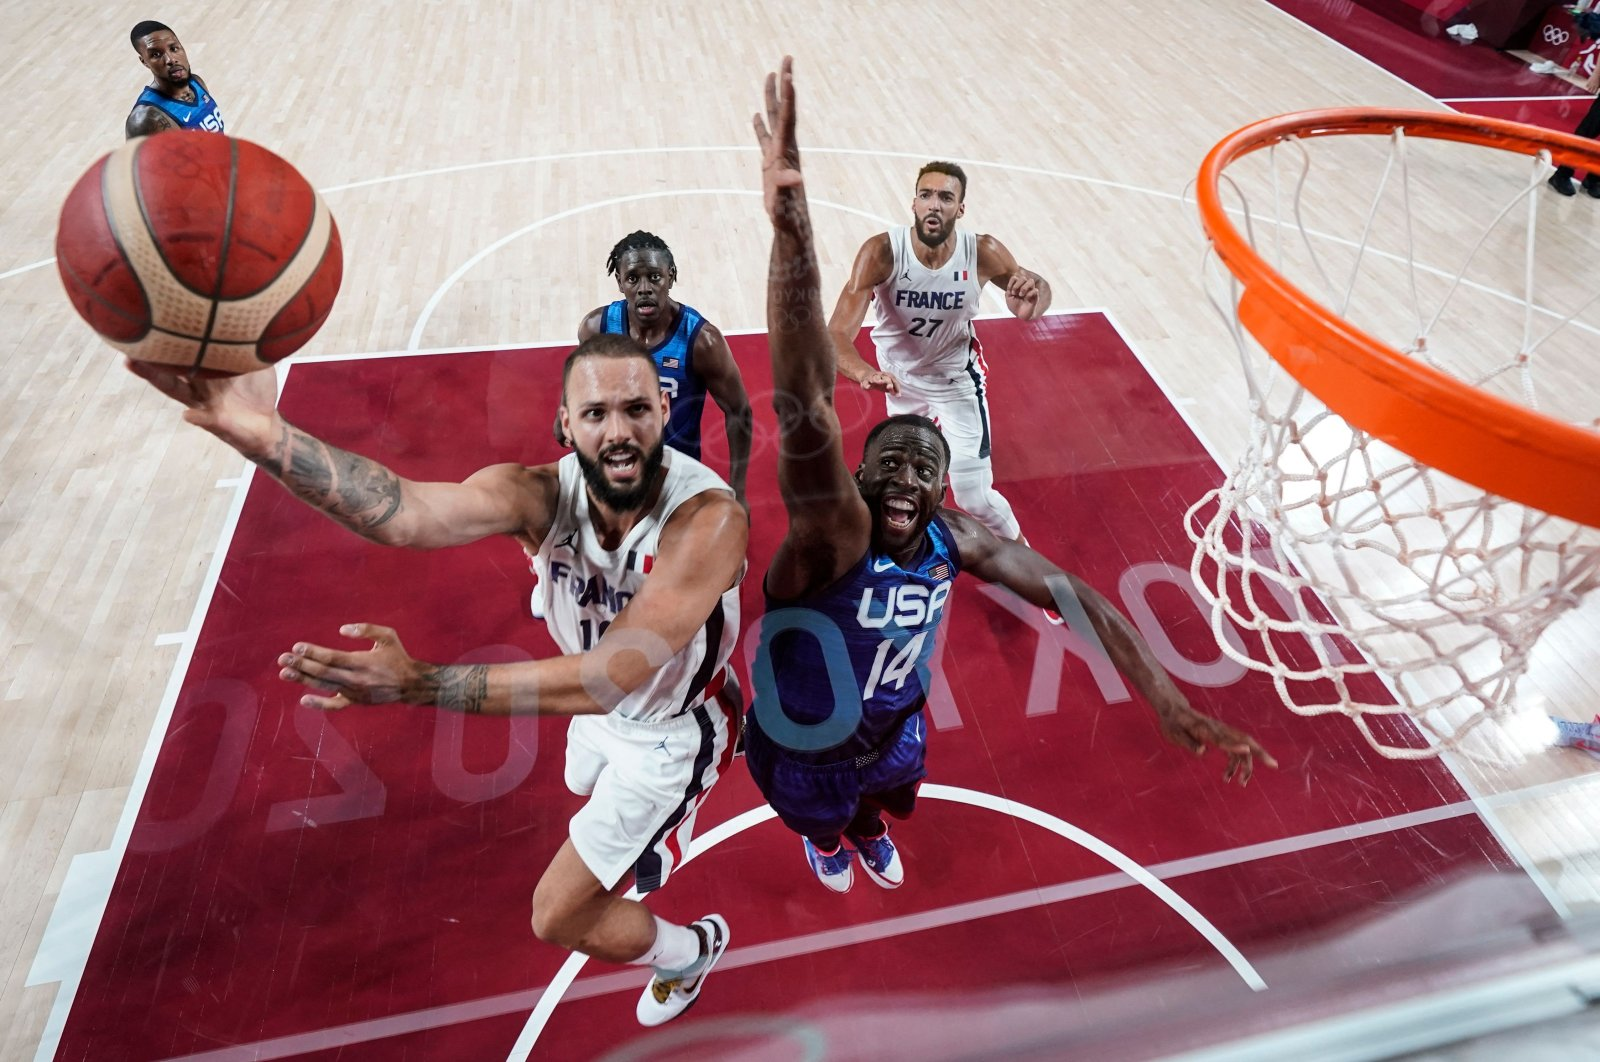 France's Evan Fournier (L) goes for the basket past the U.S.'s Draymond Jamal Green during the Tokyo 2020 Olympic Games men's preliminary round Group A match at the Saitama Super Arena, Saitama, Japan, July 25, 2021. (AFP Photo)